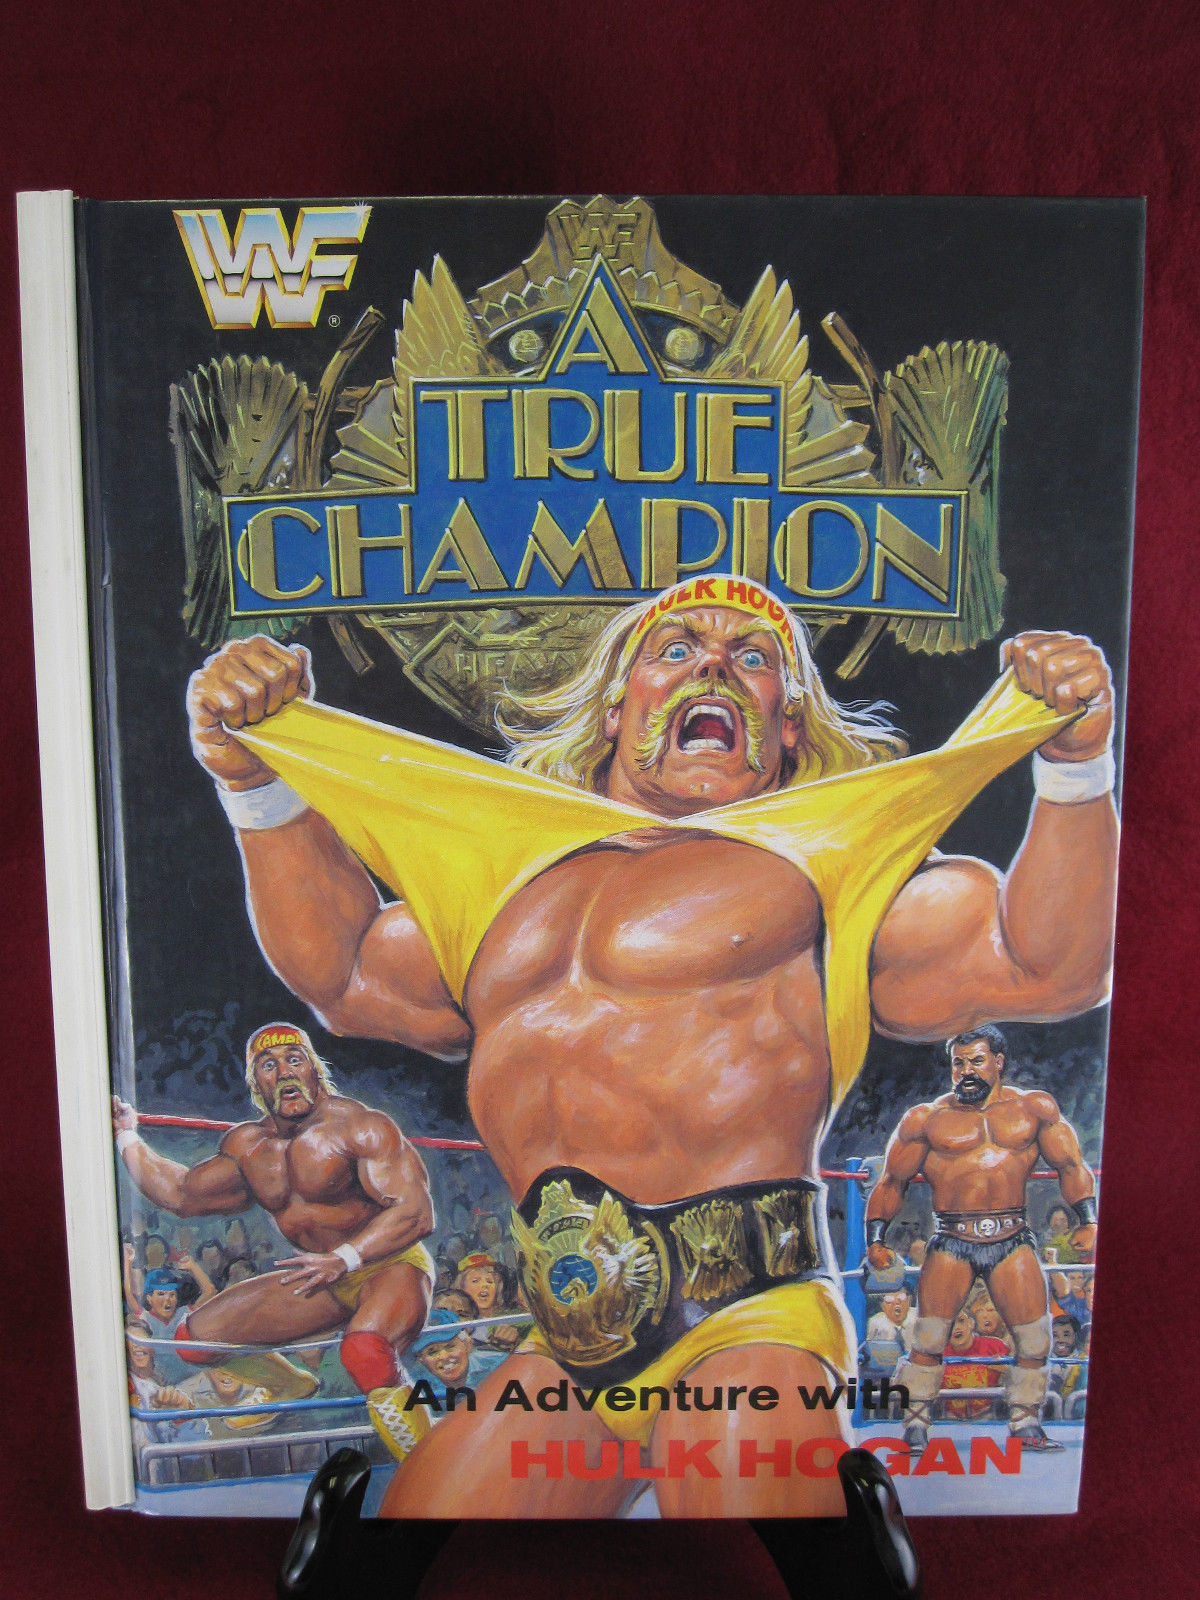 Hulk Hogan A True Champion book front